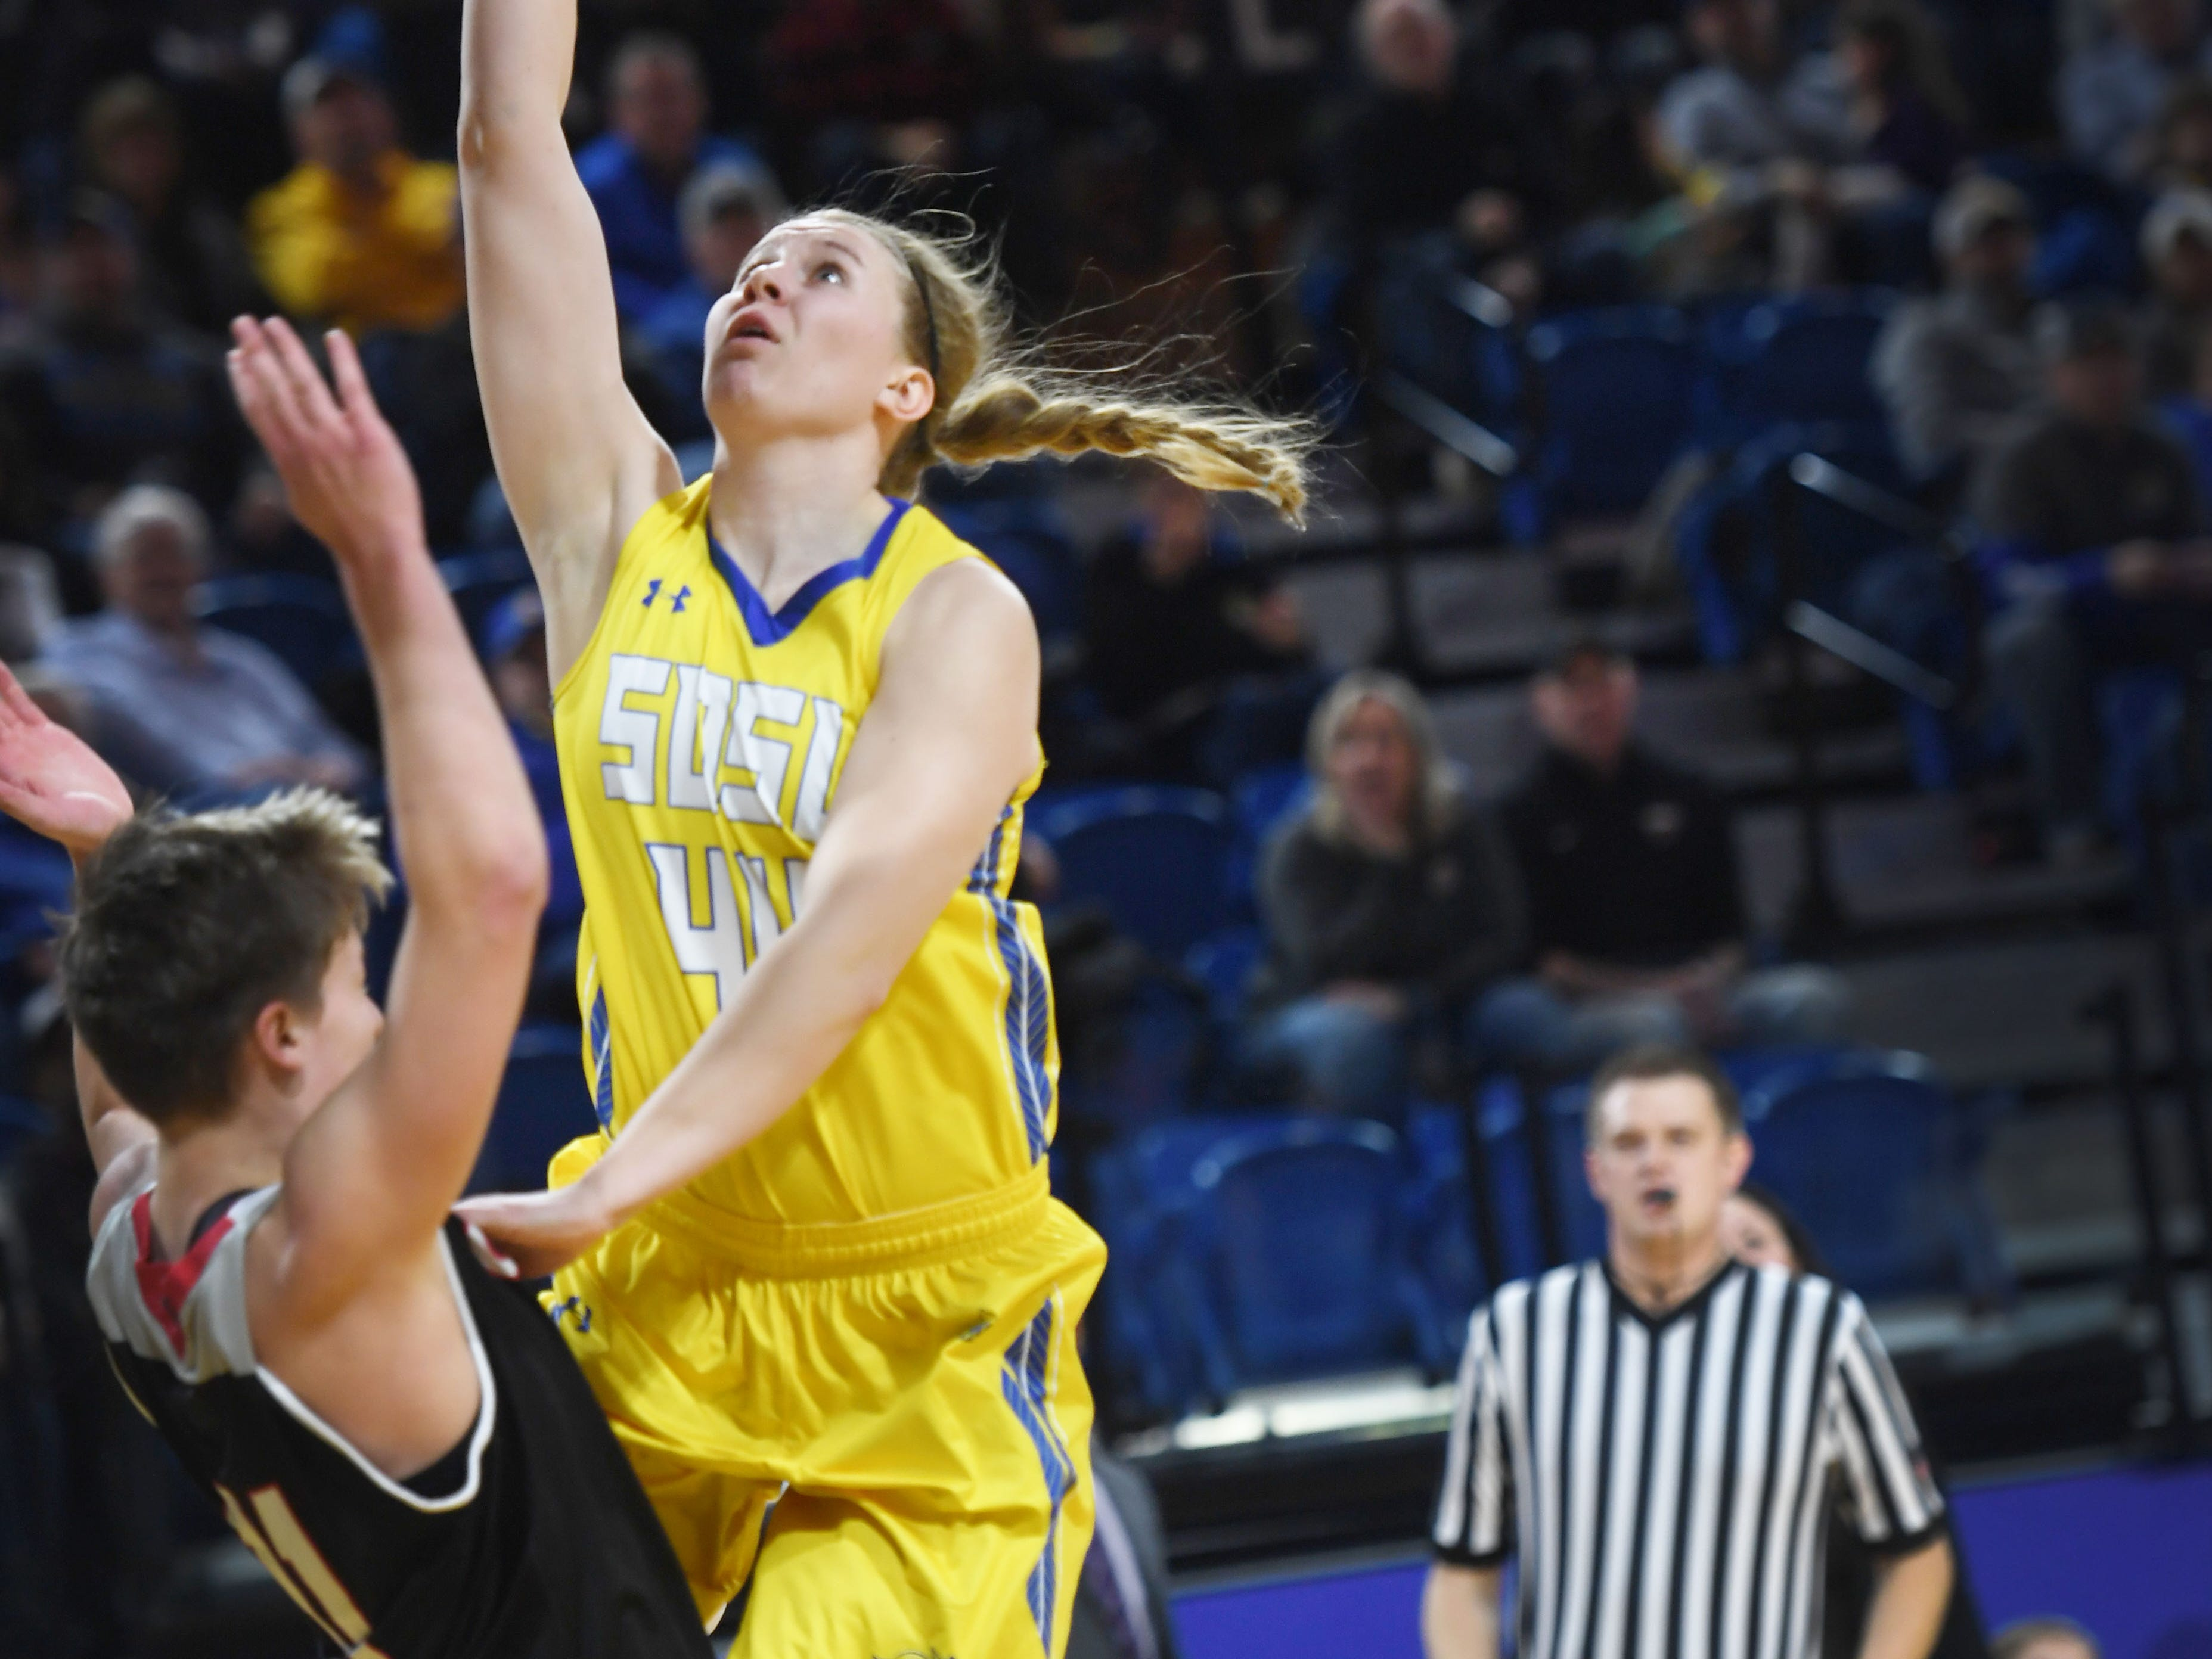 SDSU's Myah Selland attempts to score against Omaha during the game Saturday, Jan. 26, at Frost Arena in Brookings.